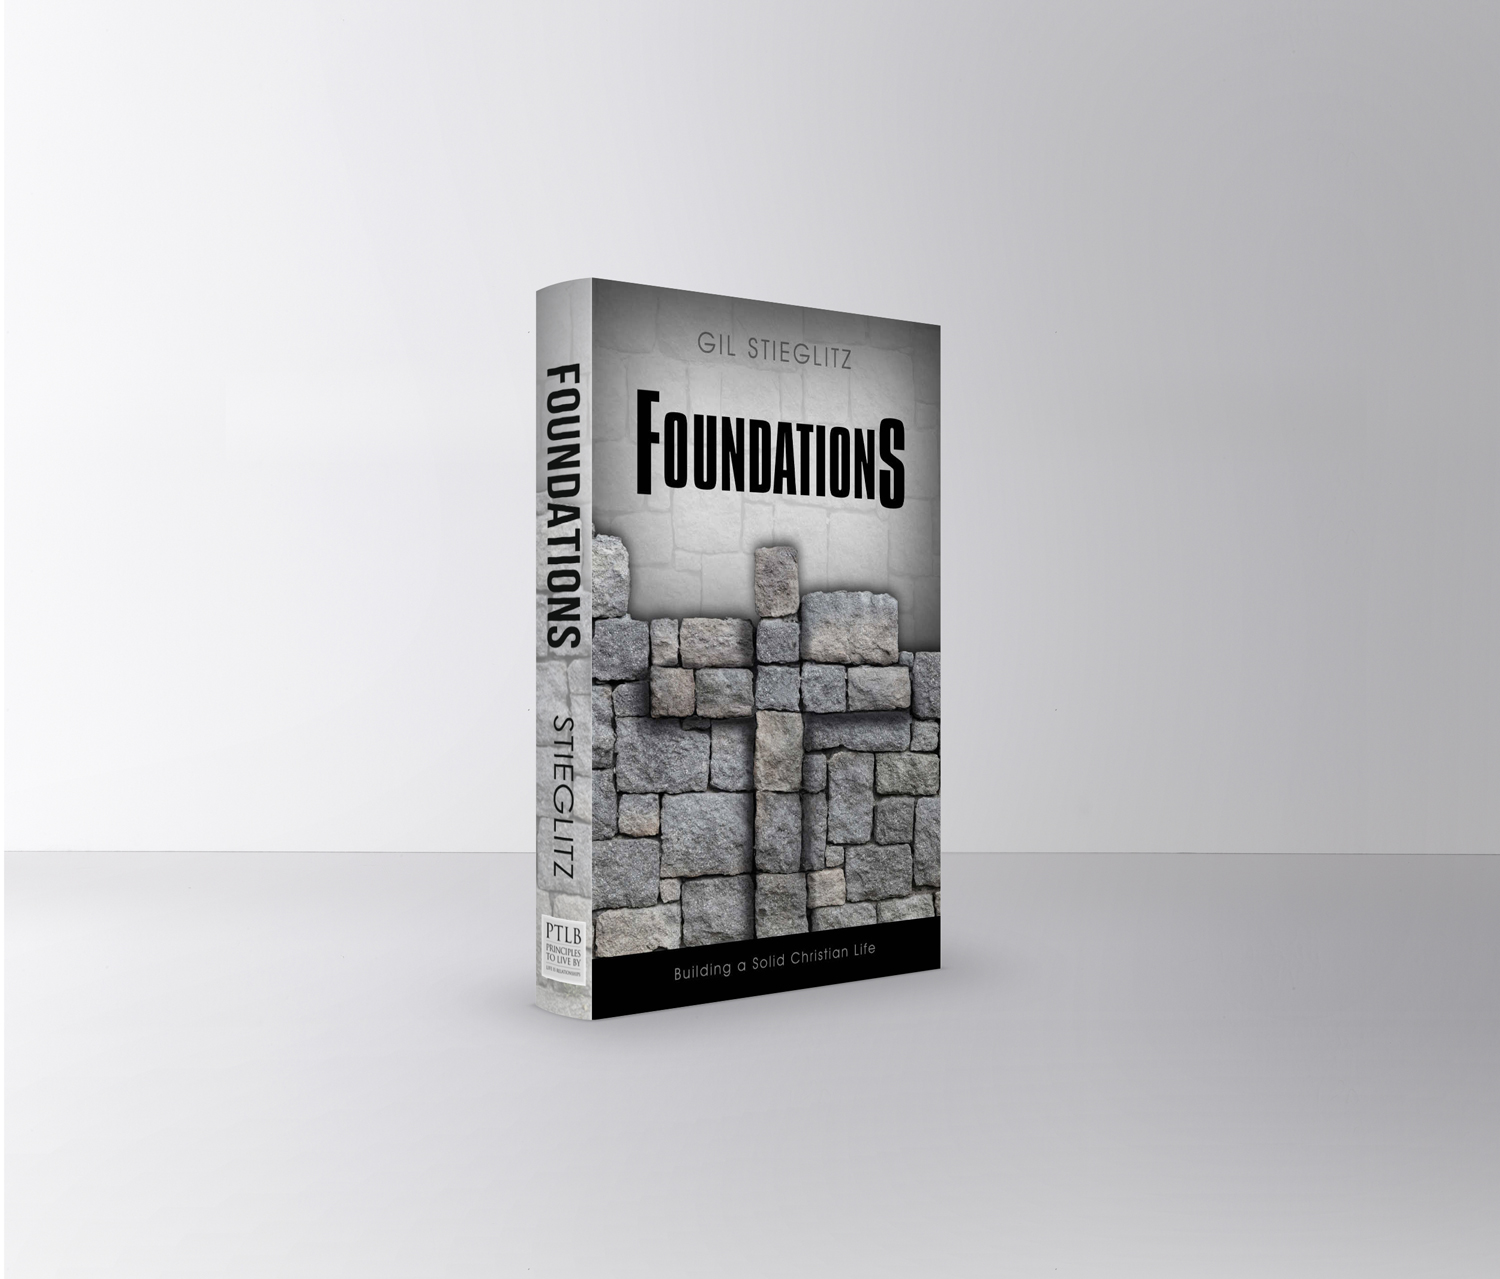 Foundations book - interior design and layout.